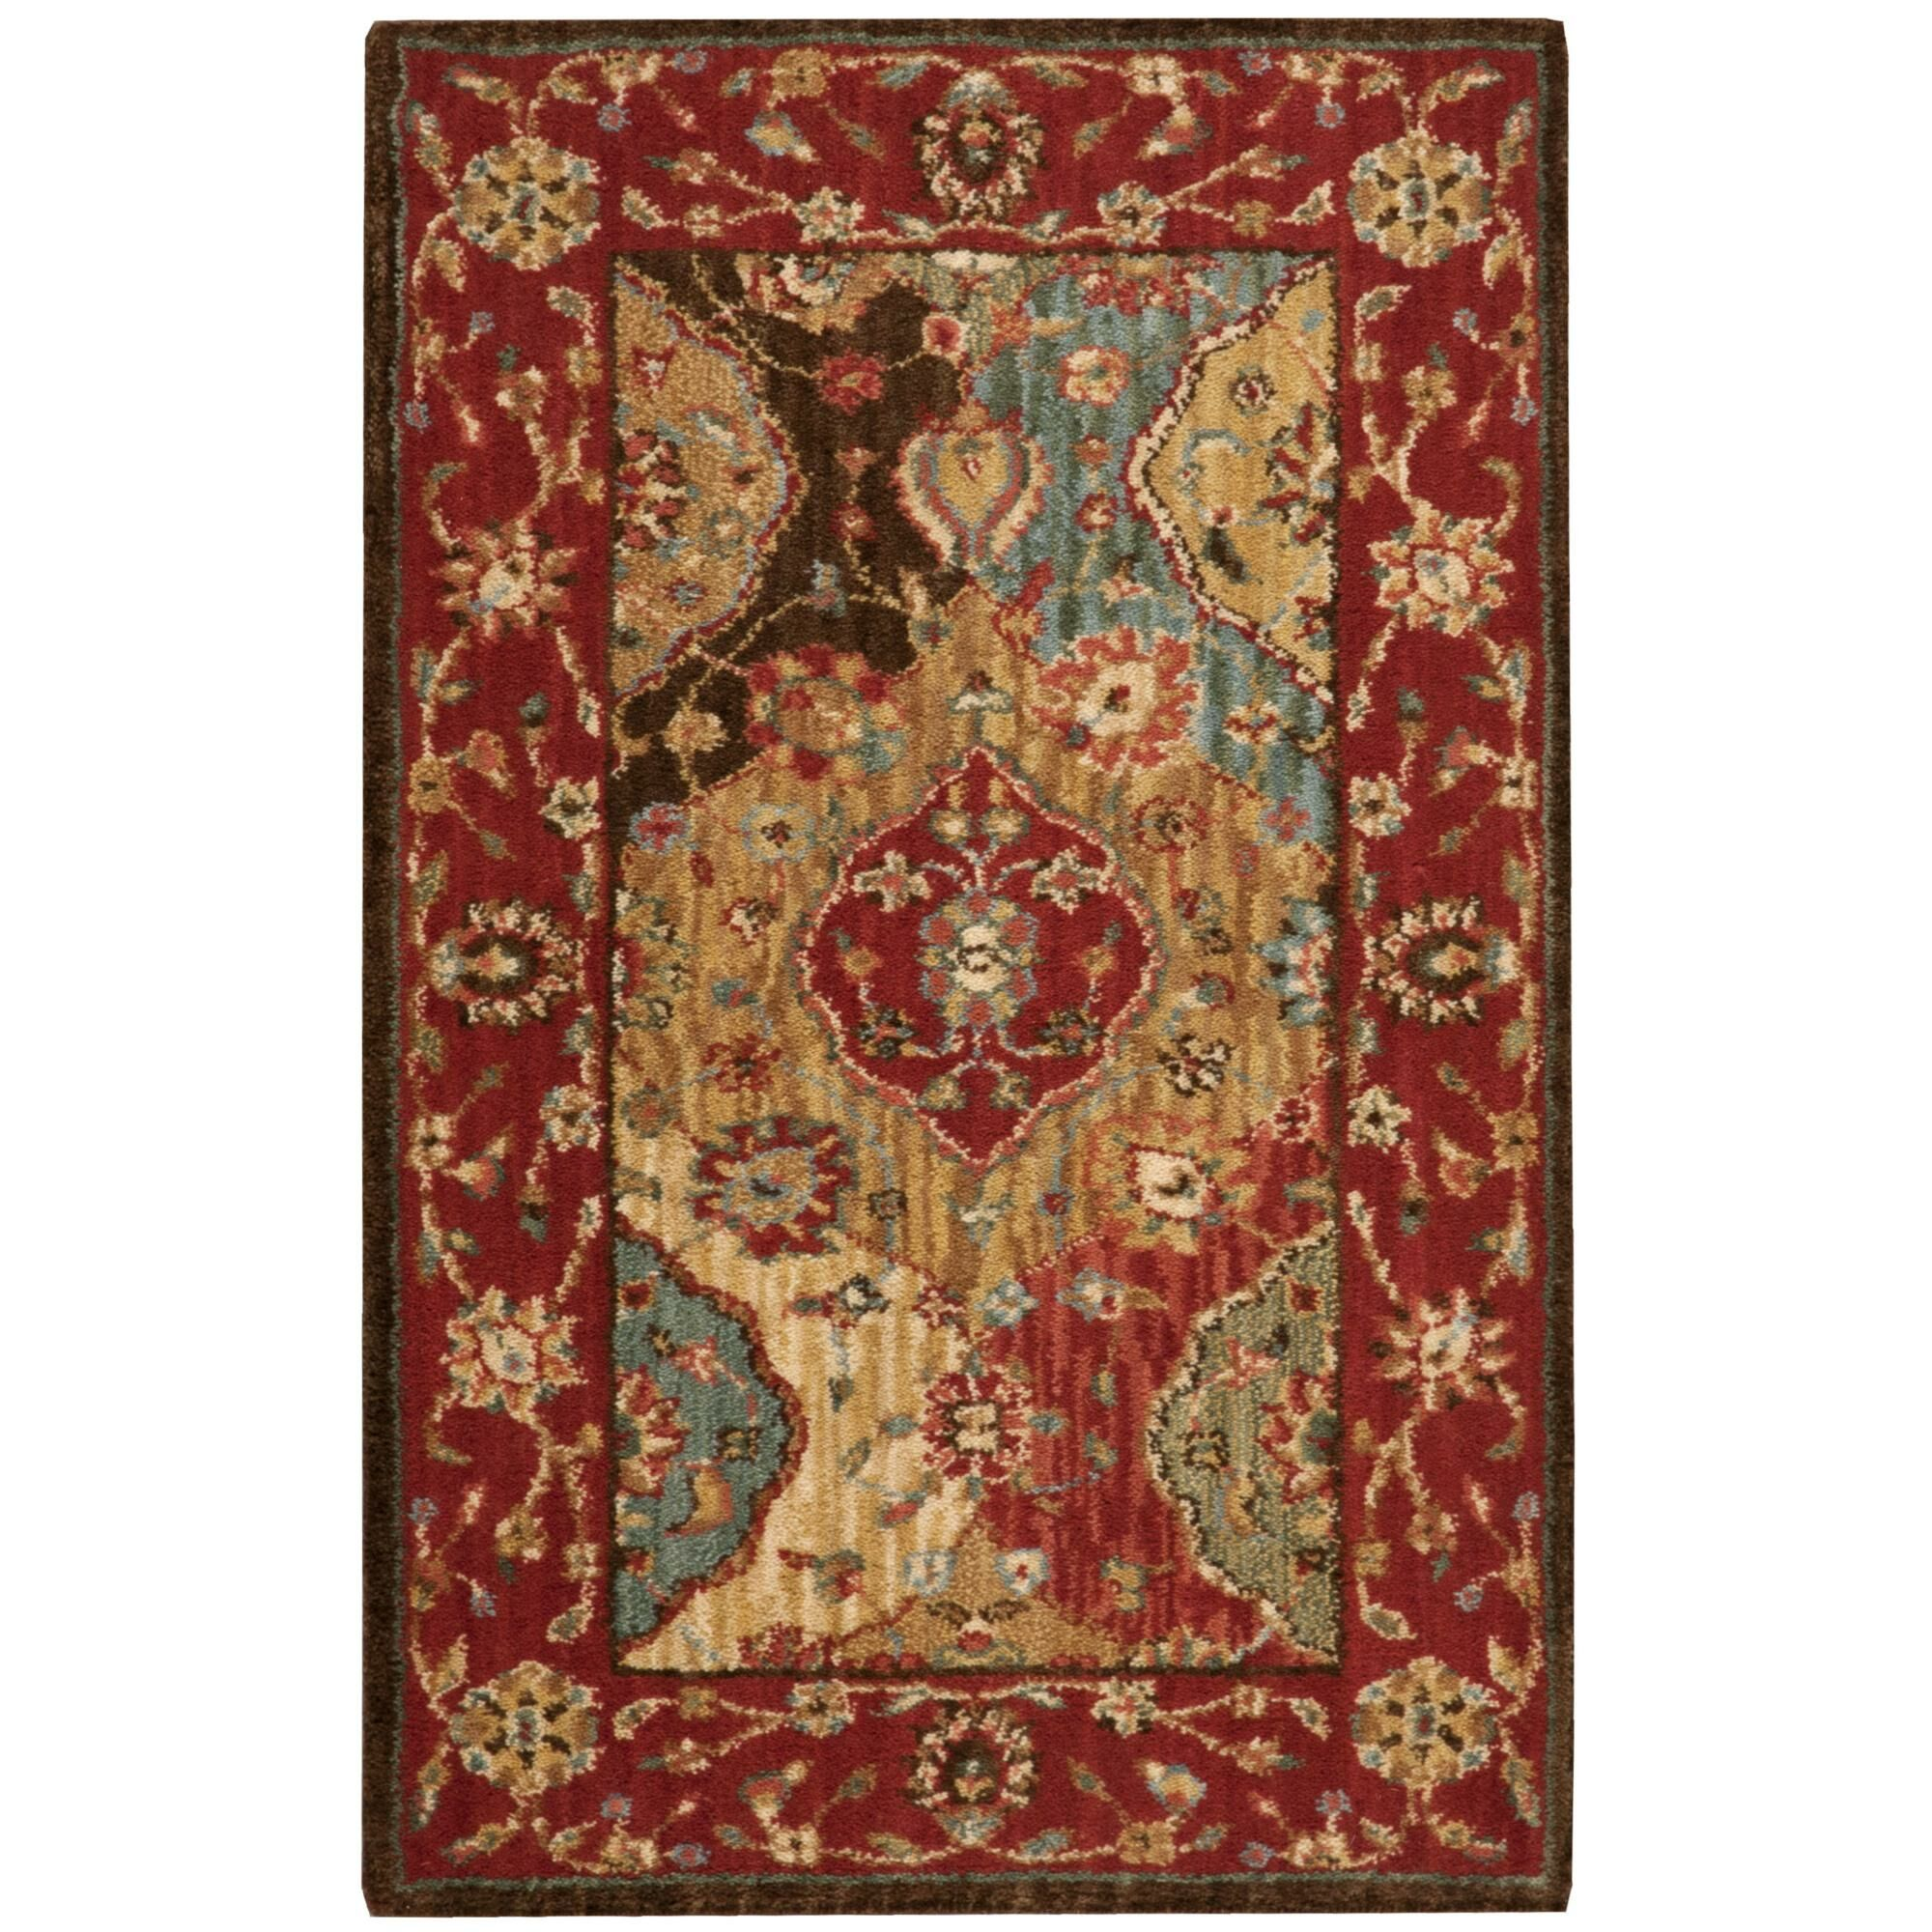 Crownover Wool Red Area Rug Rug Size: Runner 2'6